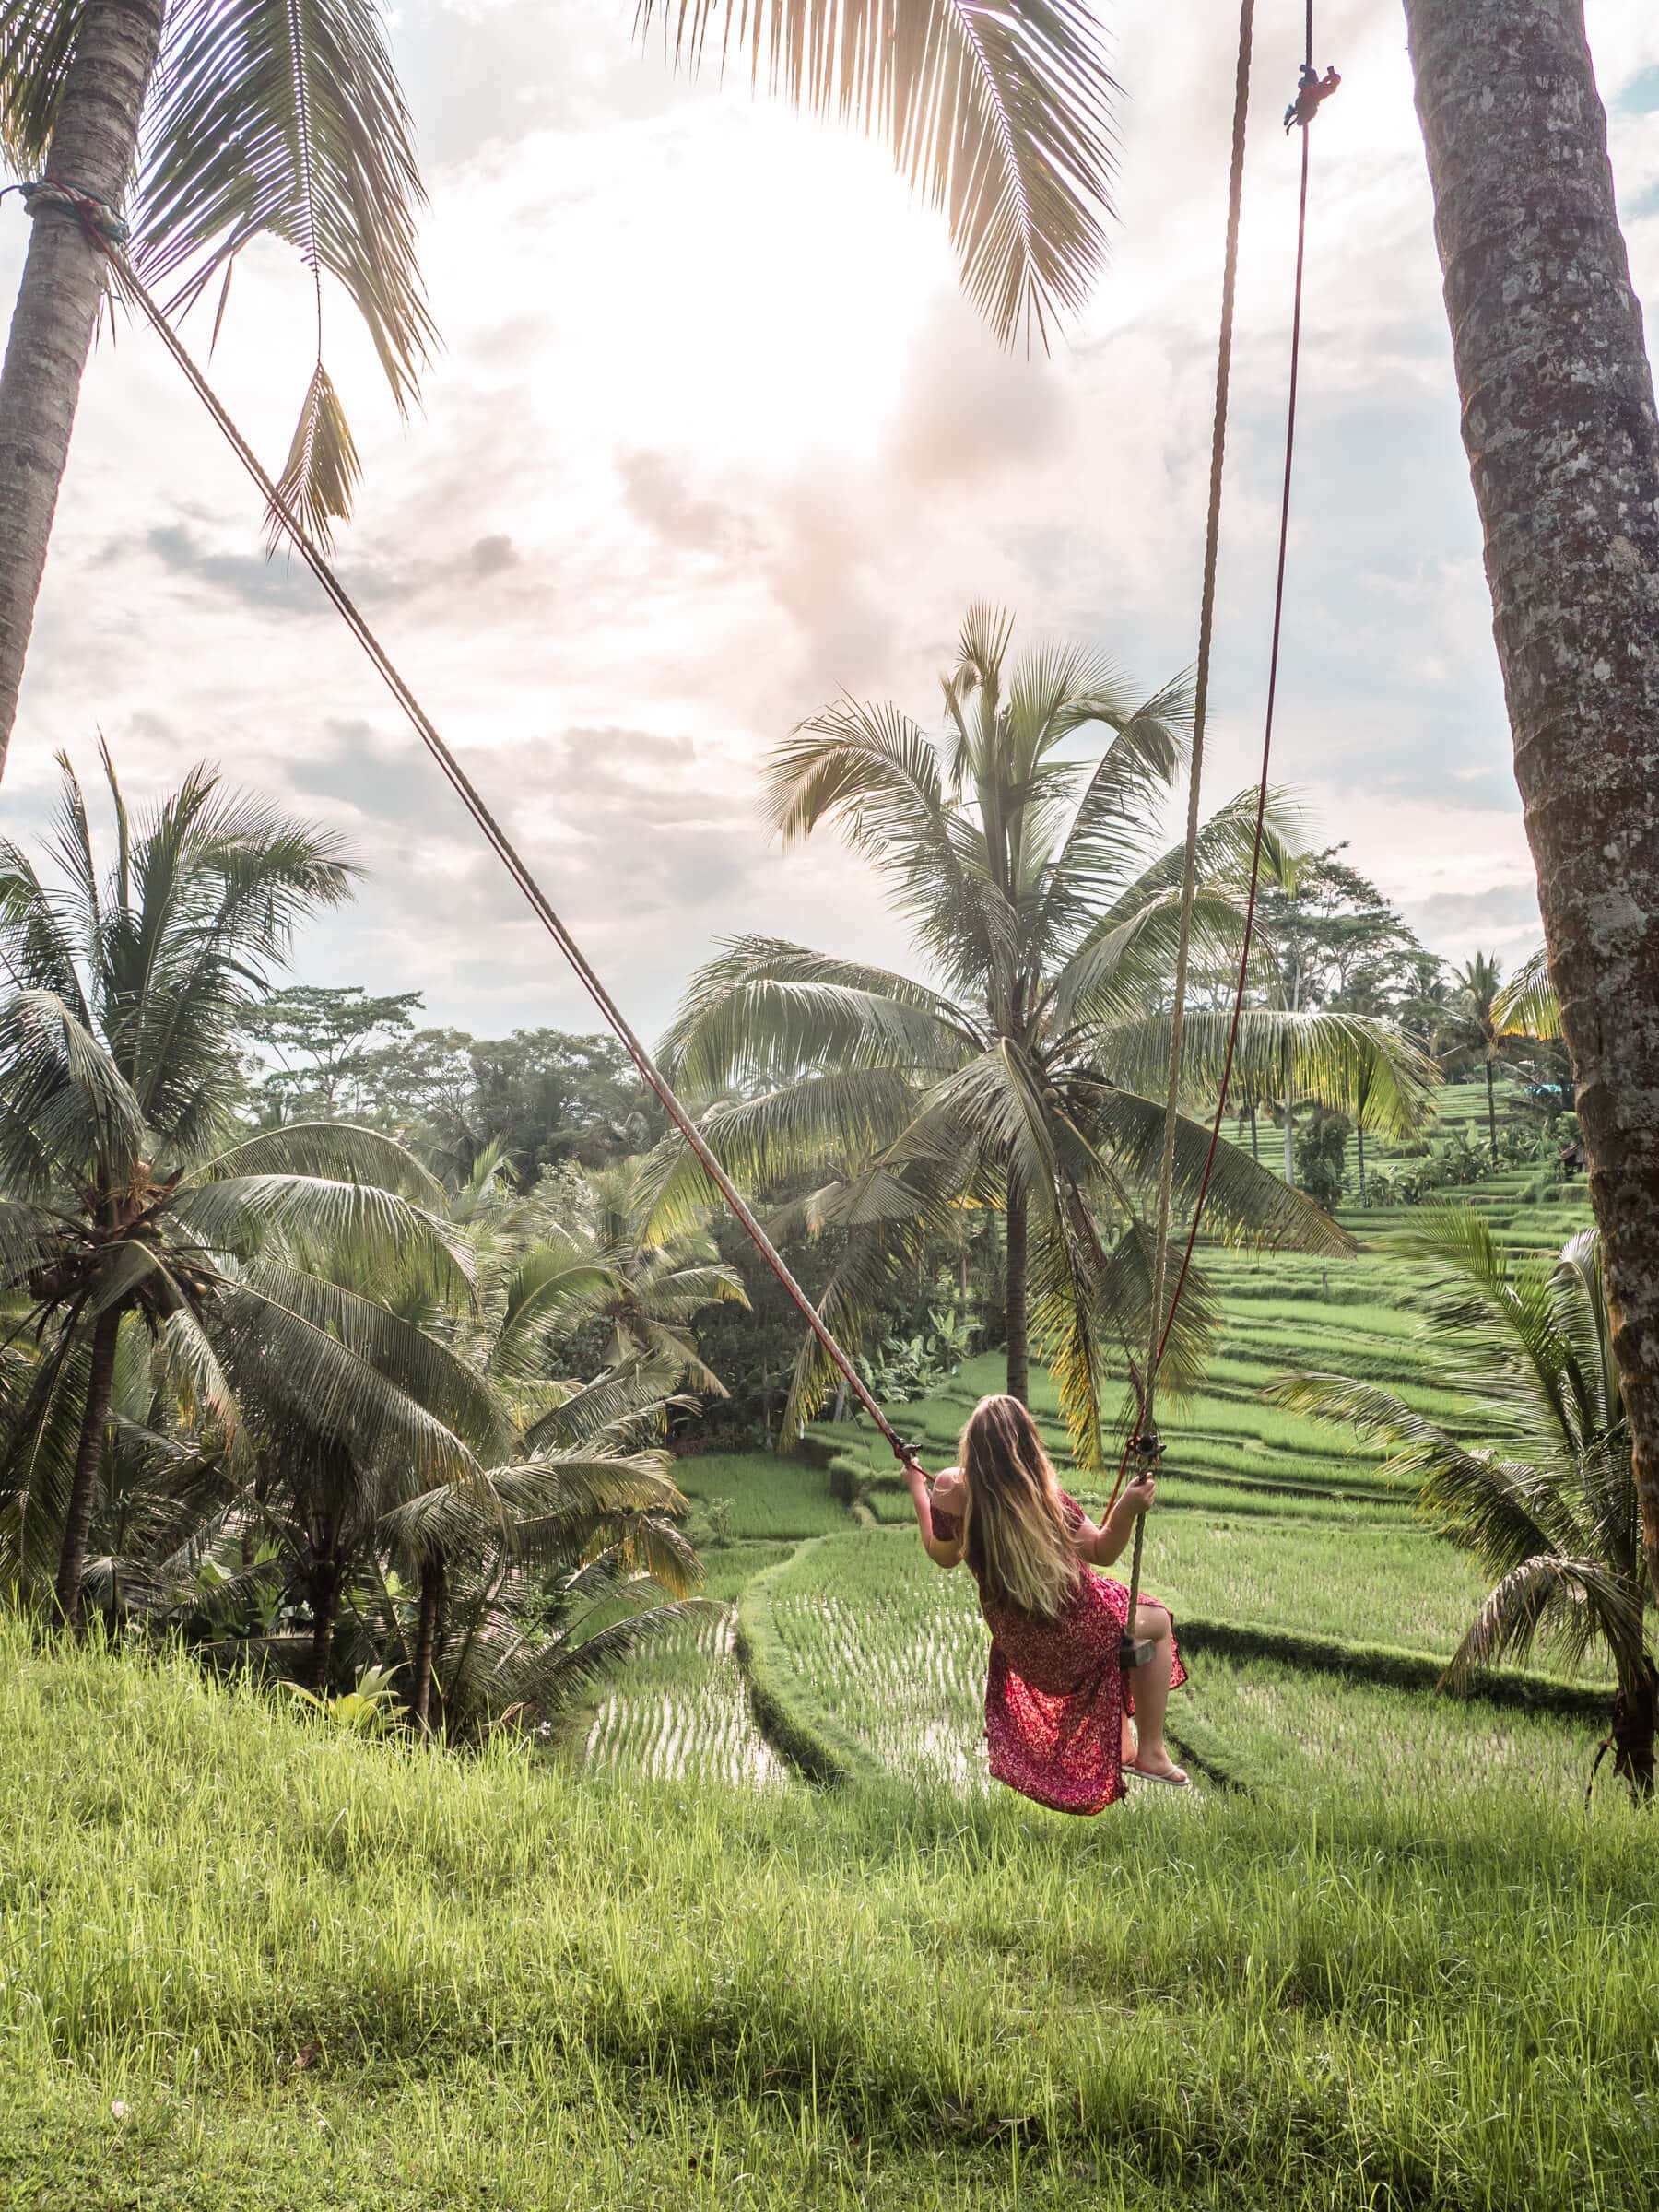 Island Life #4 - Swing in our garden overlooking the rice fields in Ubud